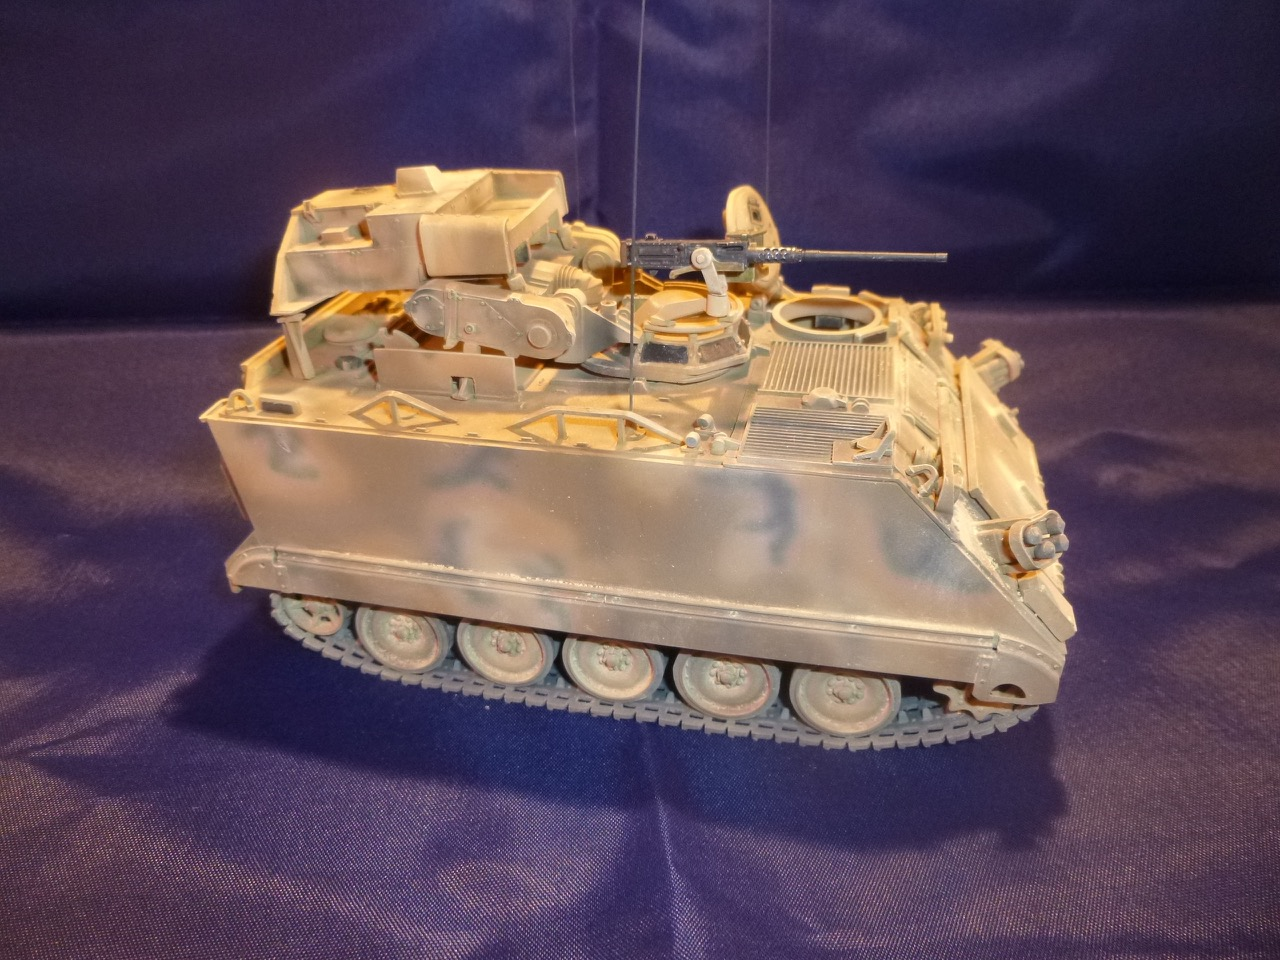 M113 / M109 Tow, une conversion en résine Verlinden au 1/35, base Tamiya 17012510492485247